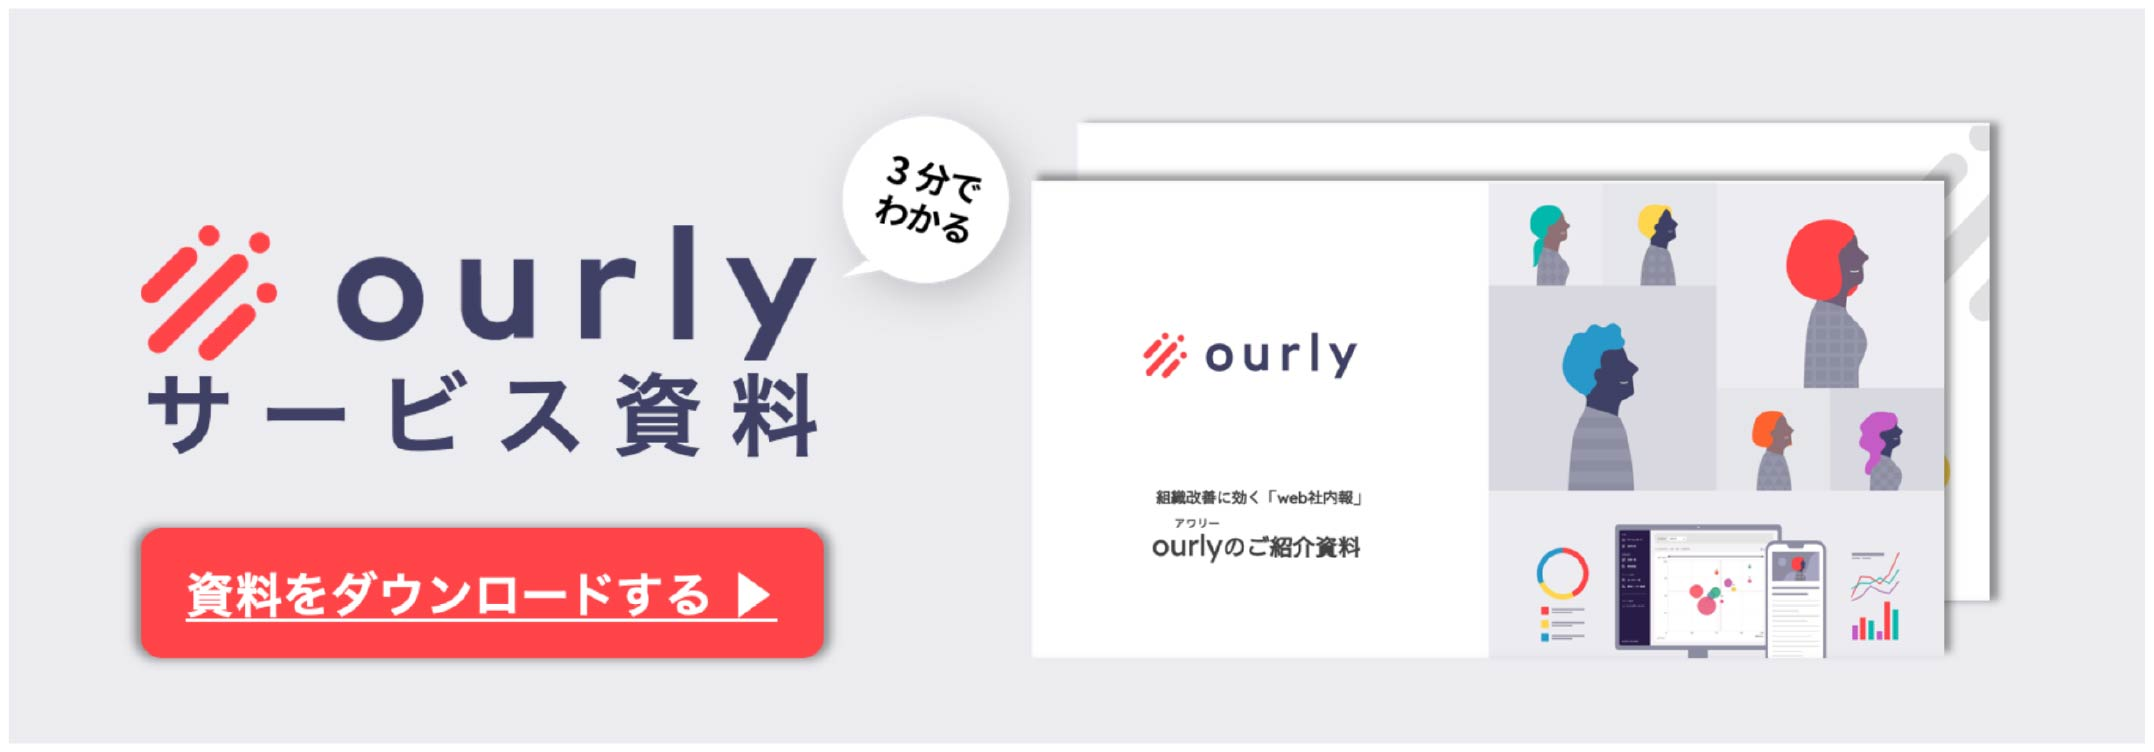 ourly トップバナー